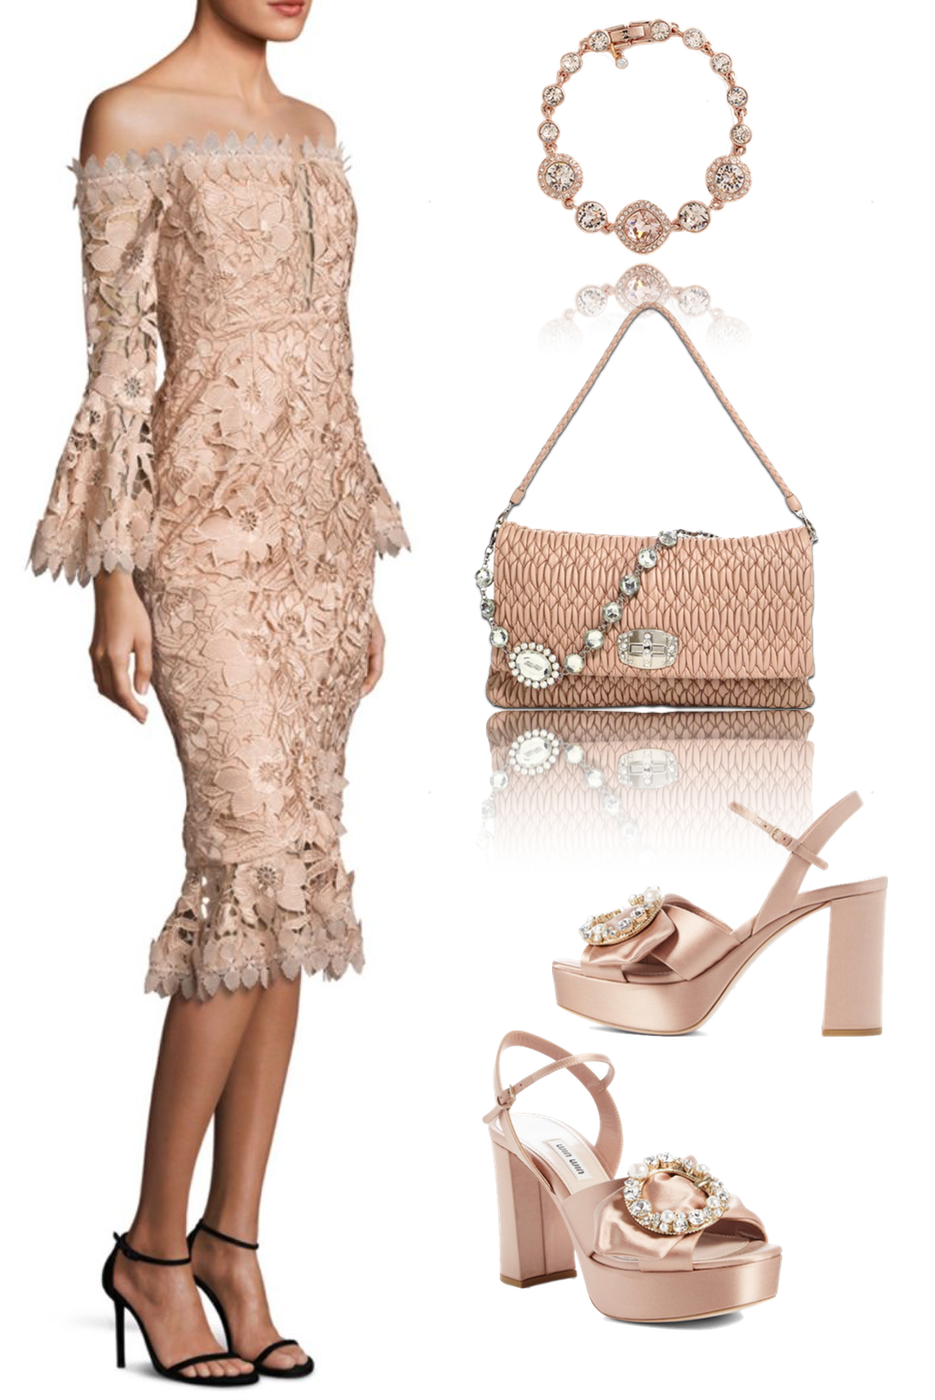 LOOKandLOVEwithLOLO: HOLIDAY::Party Dresses and Accessories